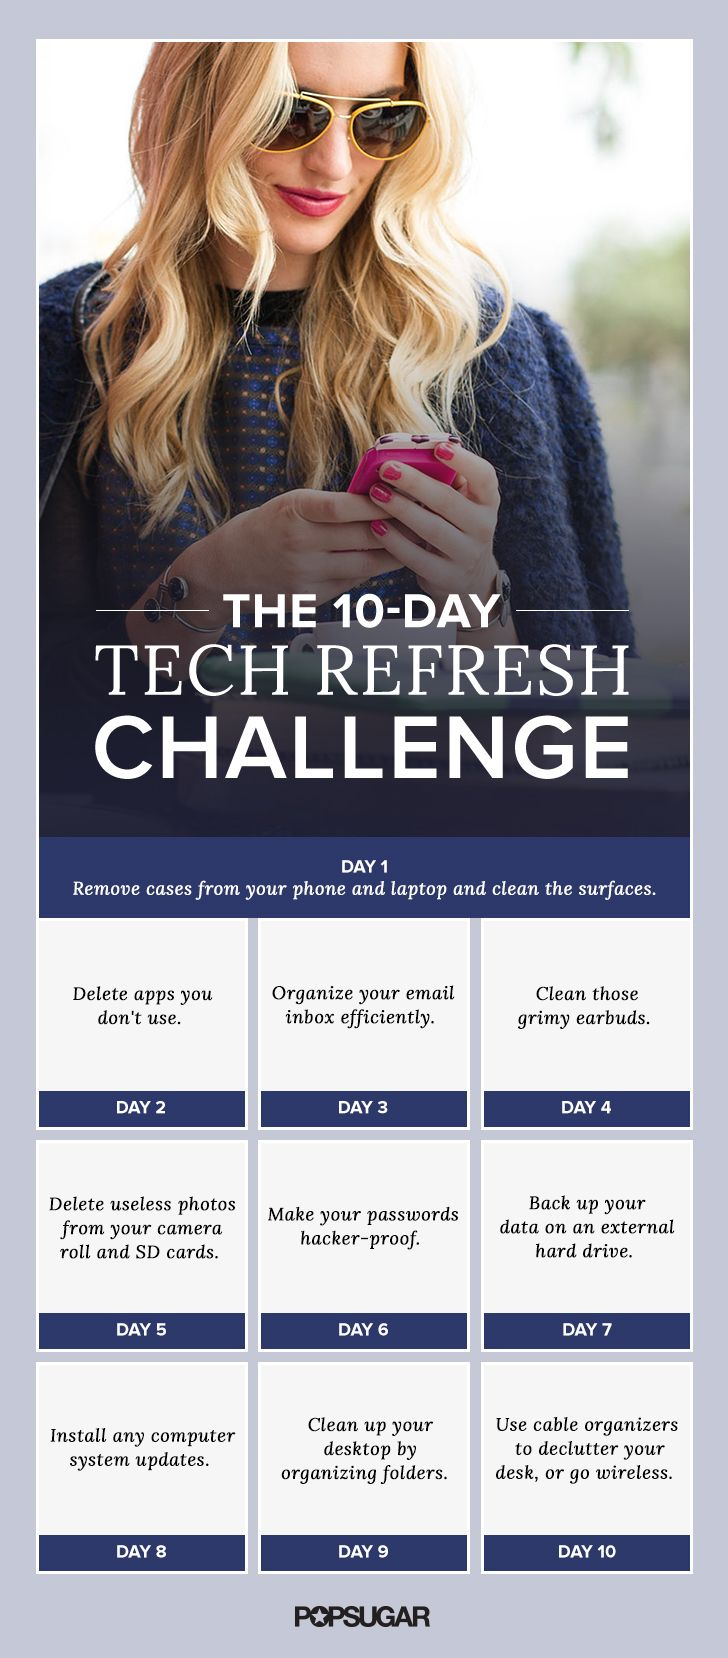 en days — that's all it takes to get your digital life back on track. Whether you haven't cleaned your phone in months (hey, we're not judging) or have a password that's way too easy to guess, this nonintimidating plan will help you clean up and kick off a fresh start. Let us know how it goes, will you?